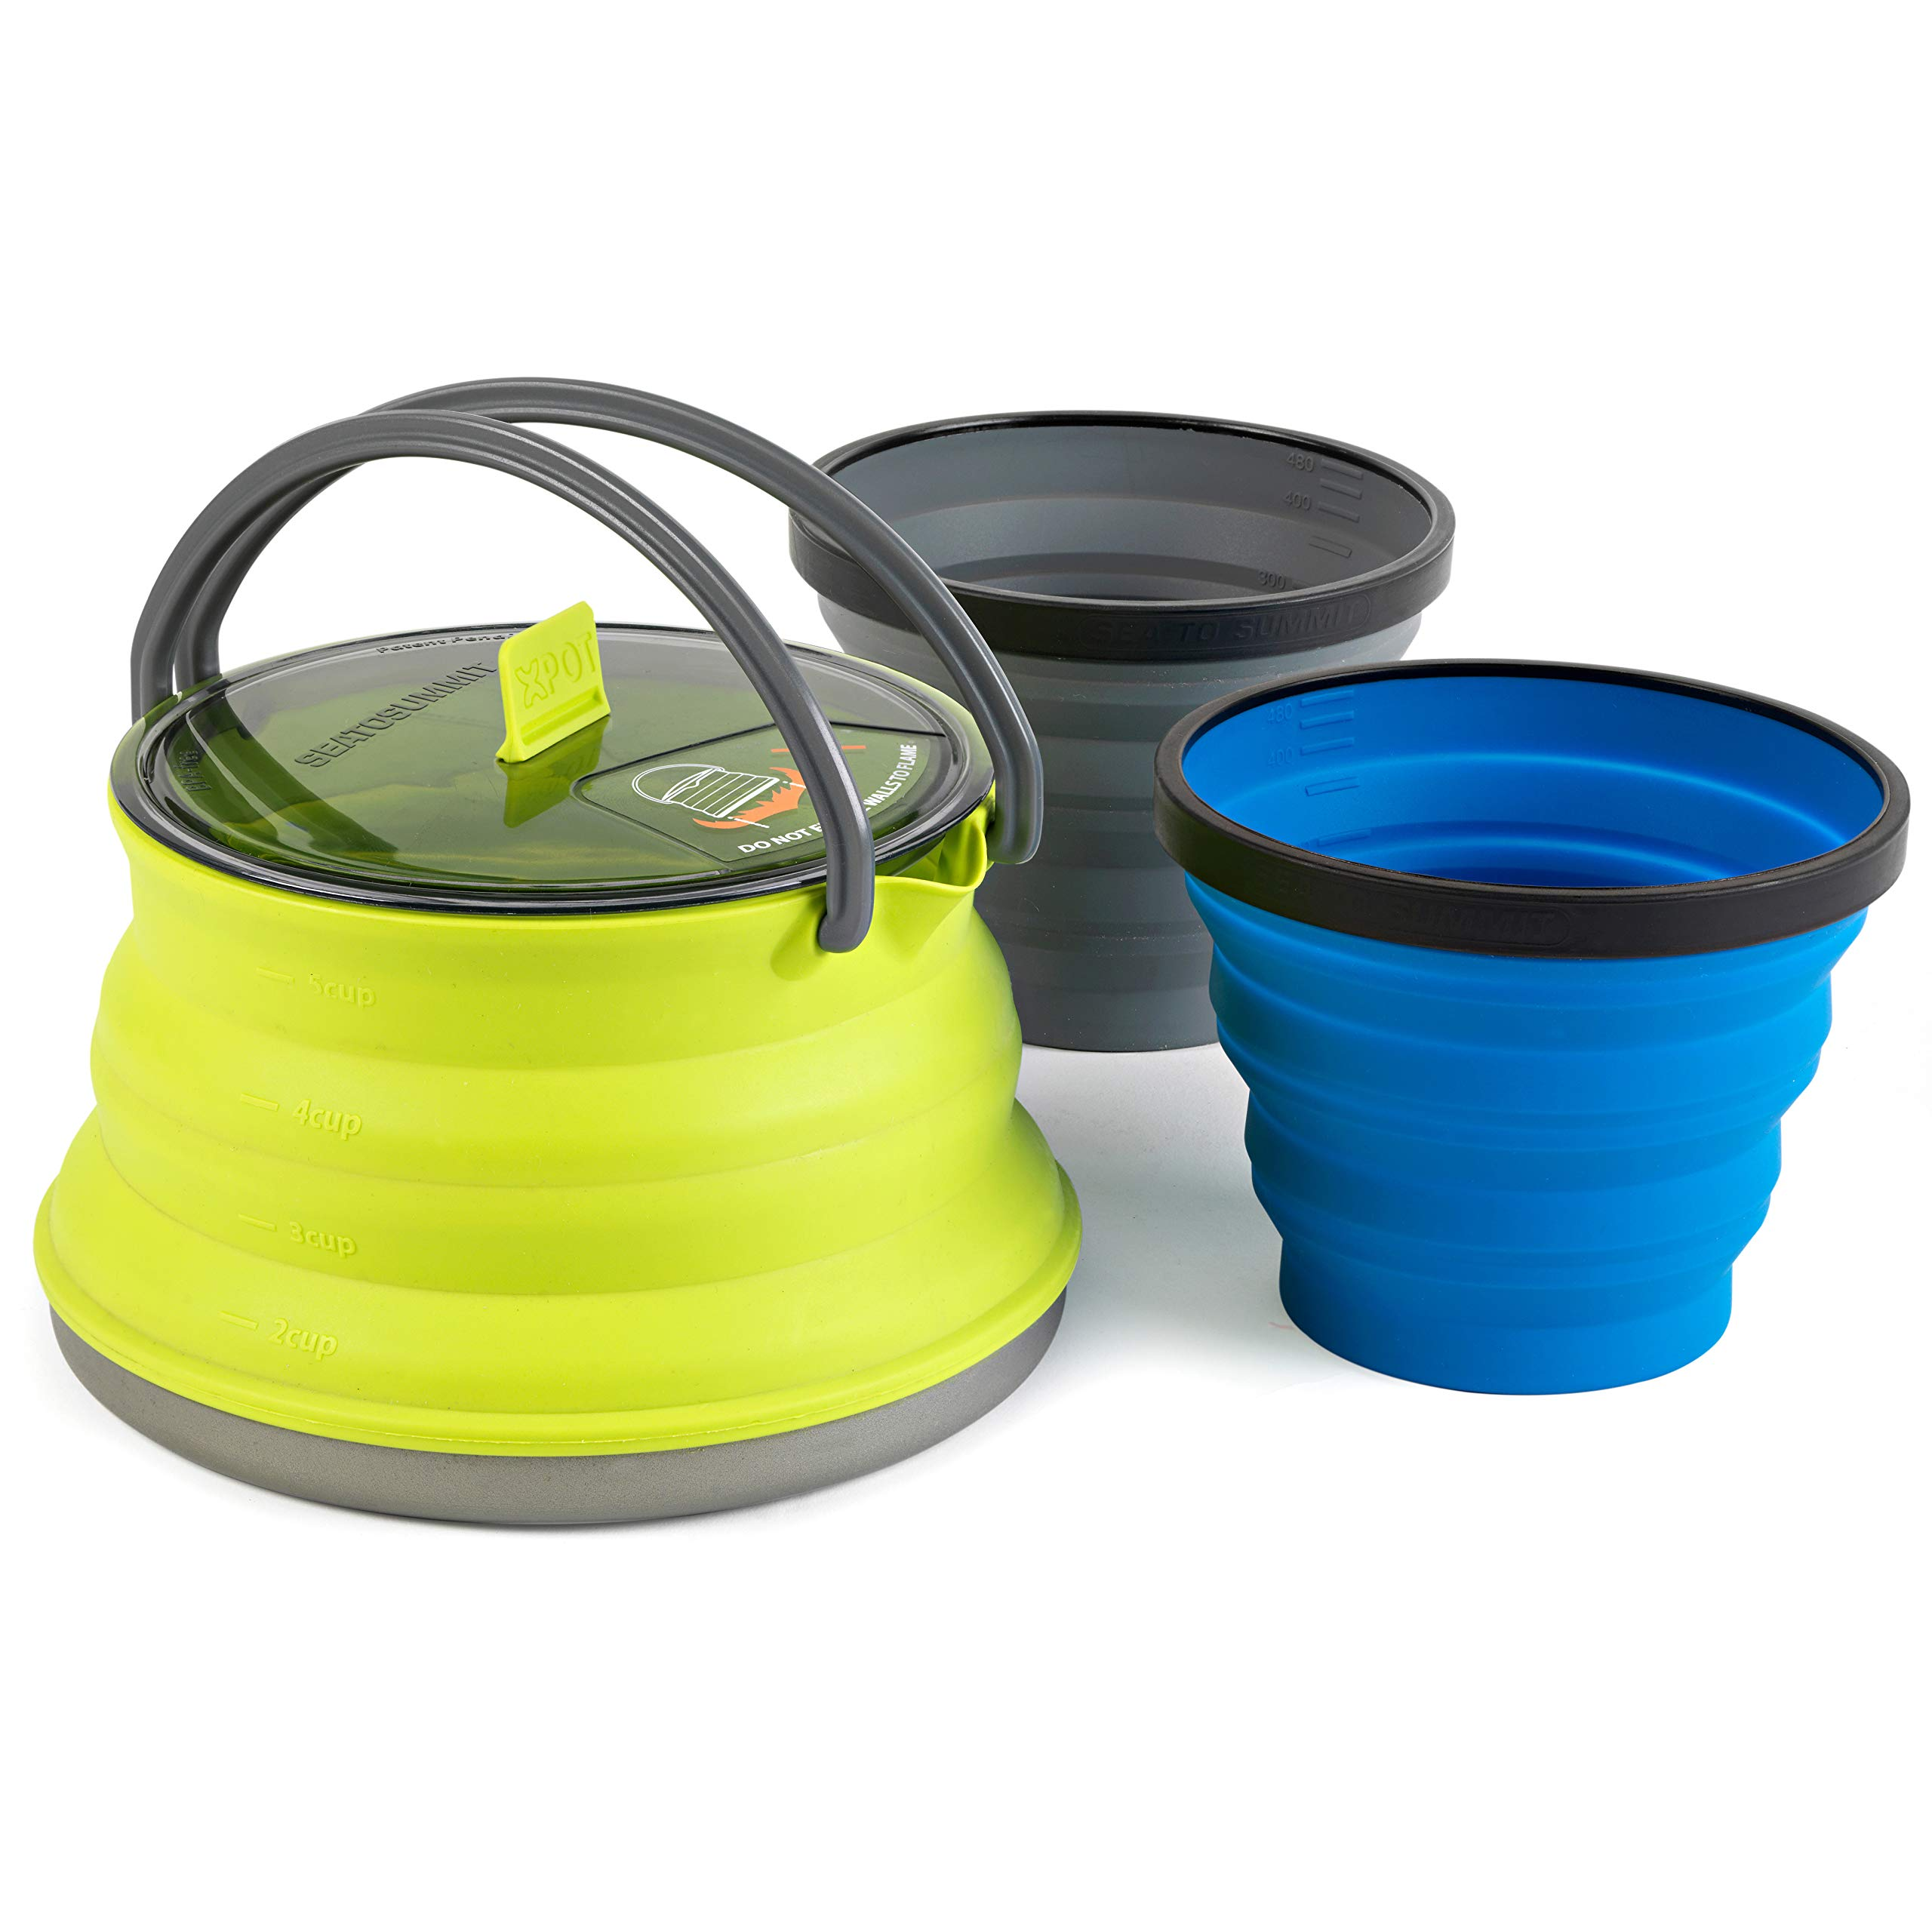 Sea to Summit X-Set 11 (3 Piece) X-Kettle & 2 X-Mugs, 1.3 L, Lime Green by Sea to Summit